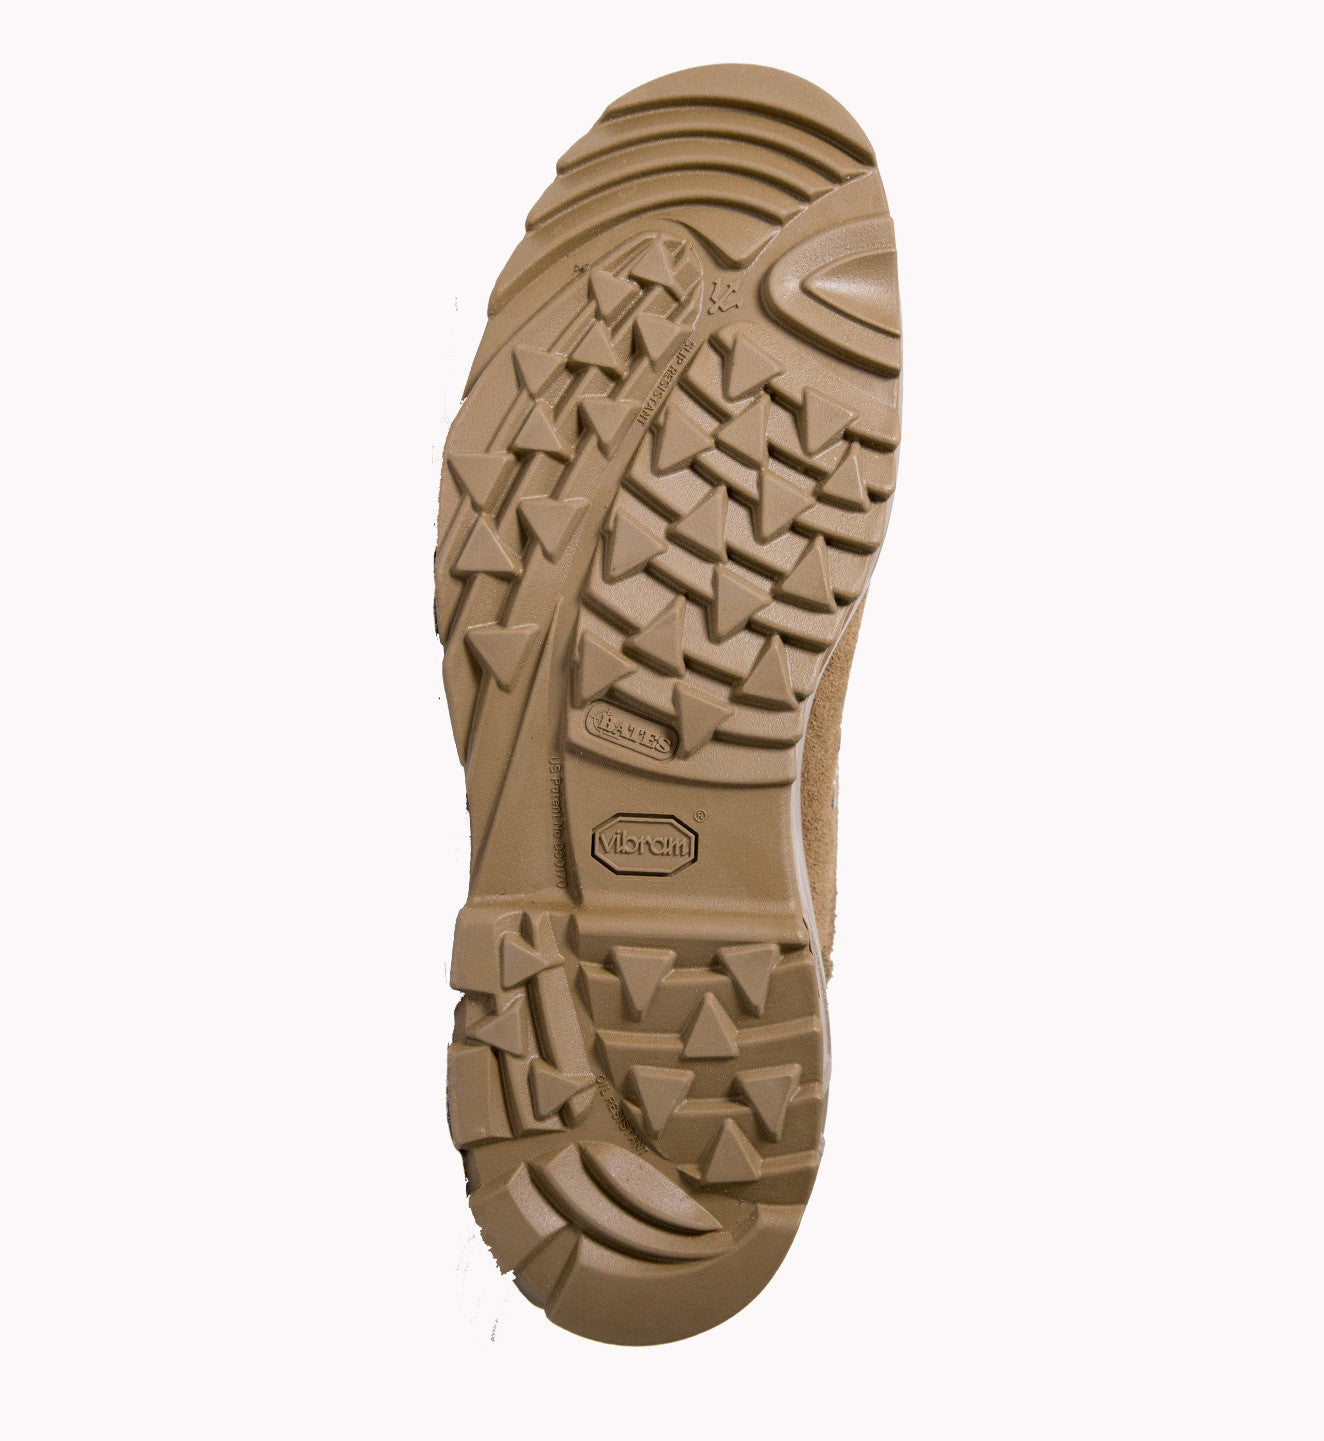 TERRAX3 Composite Toe - Coyote